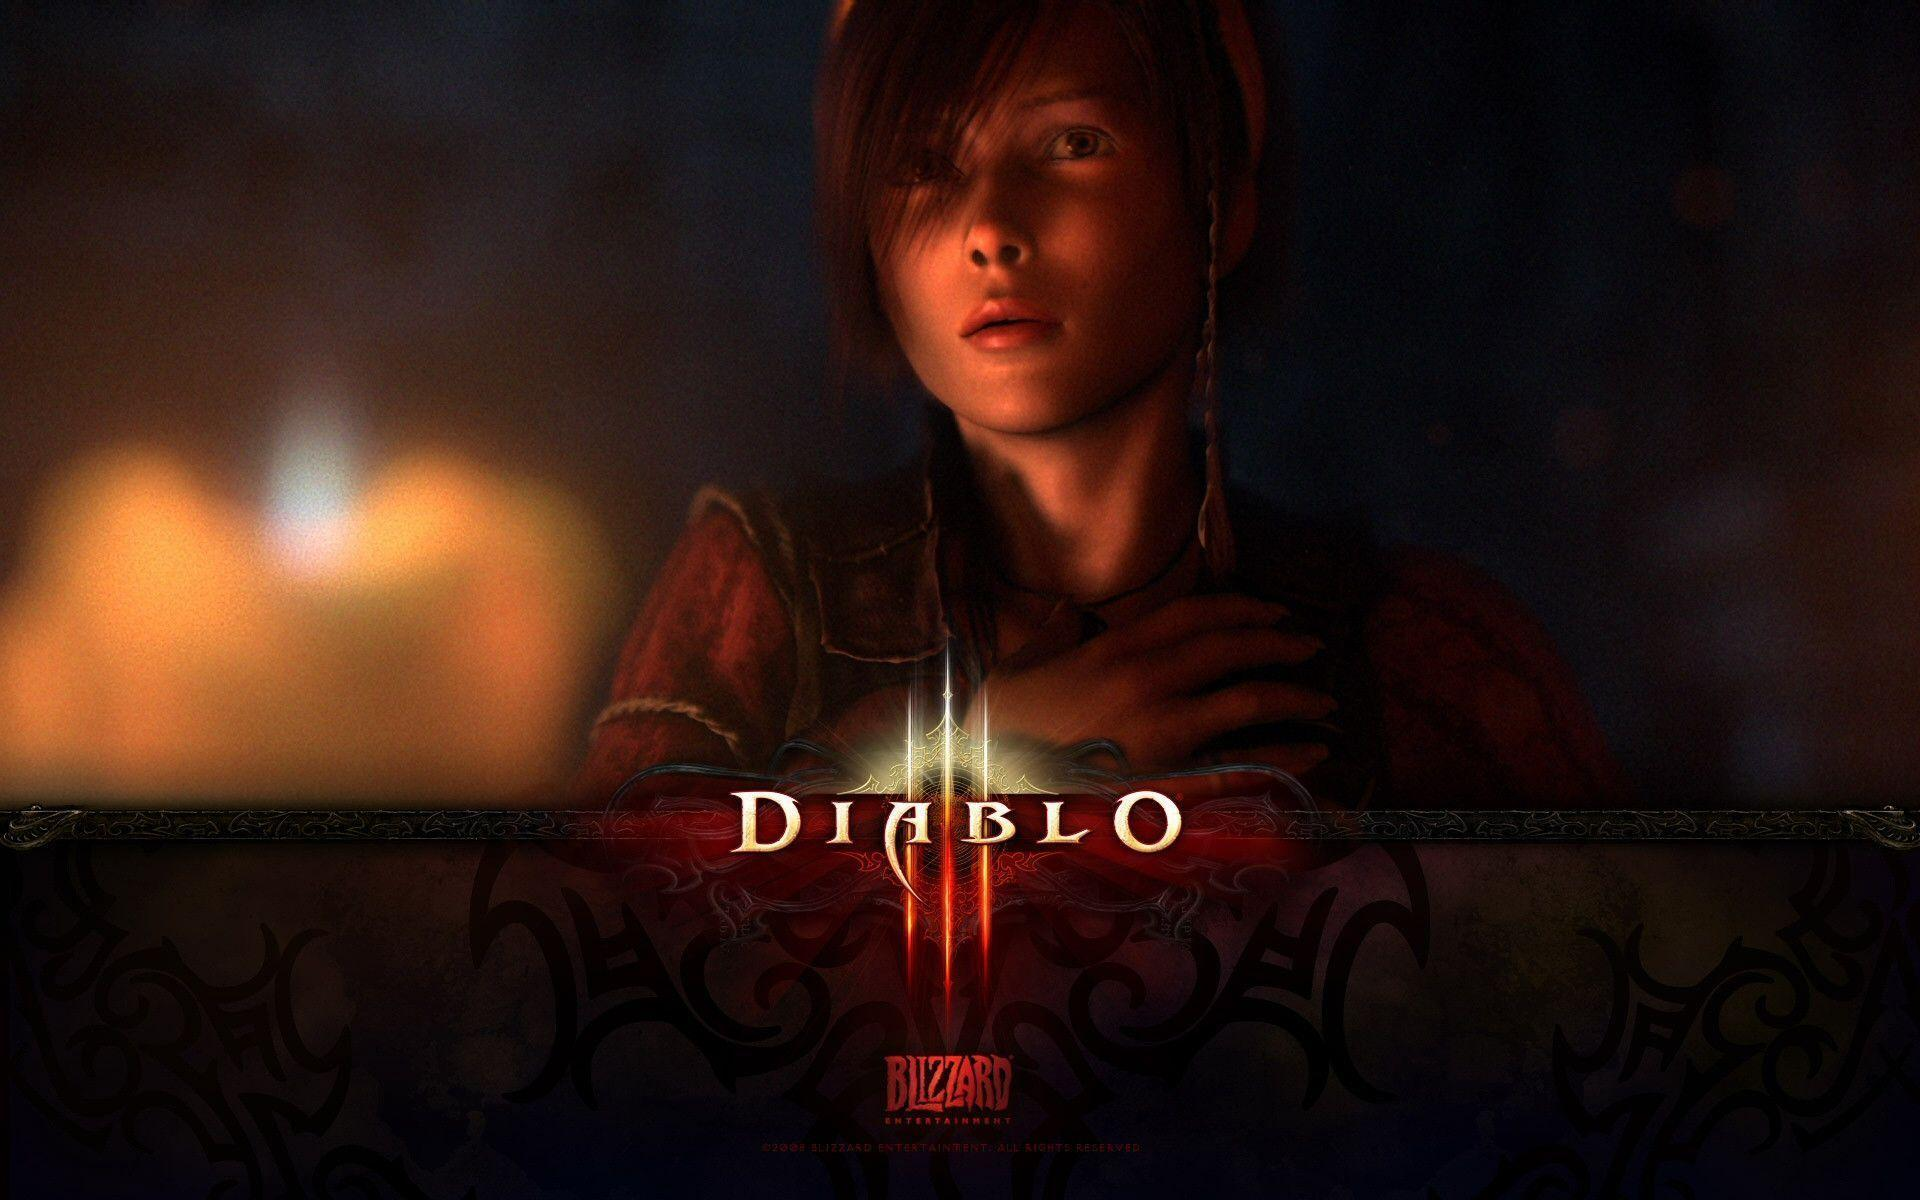 Diablo 3 Wallpaper Hd wallpaper - 77699